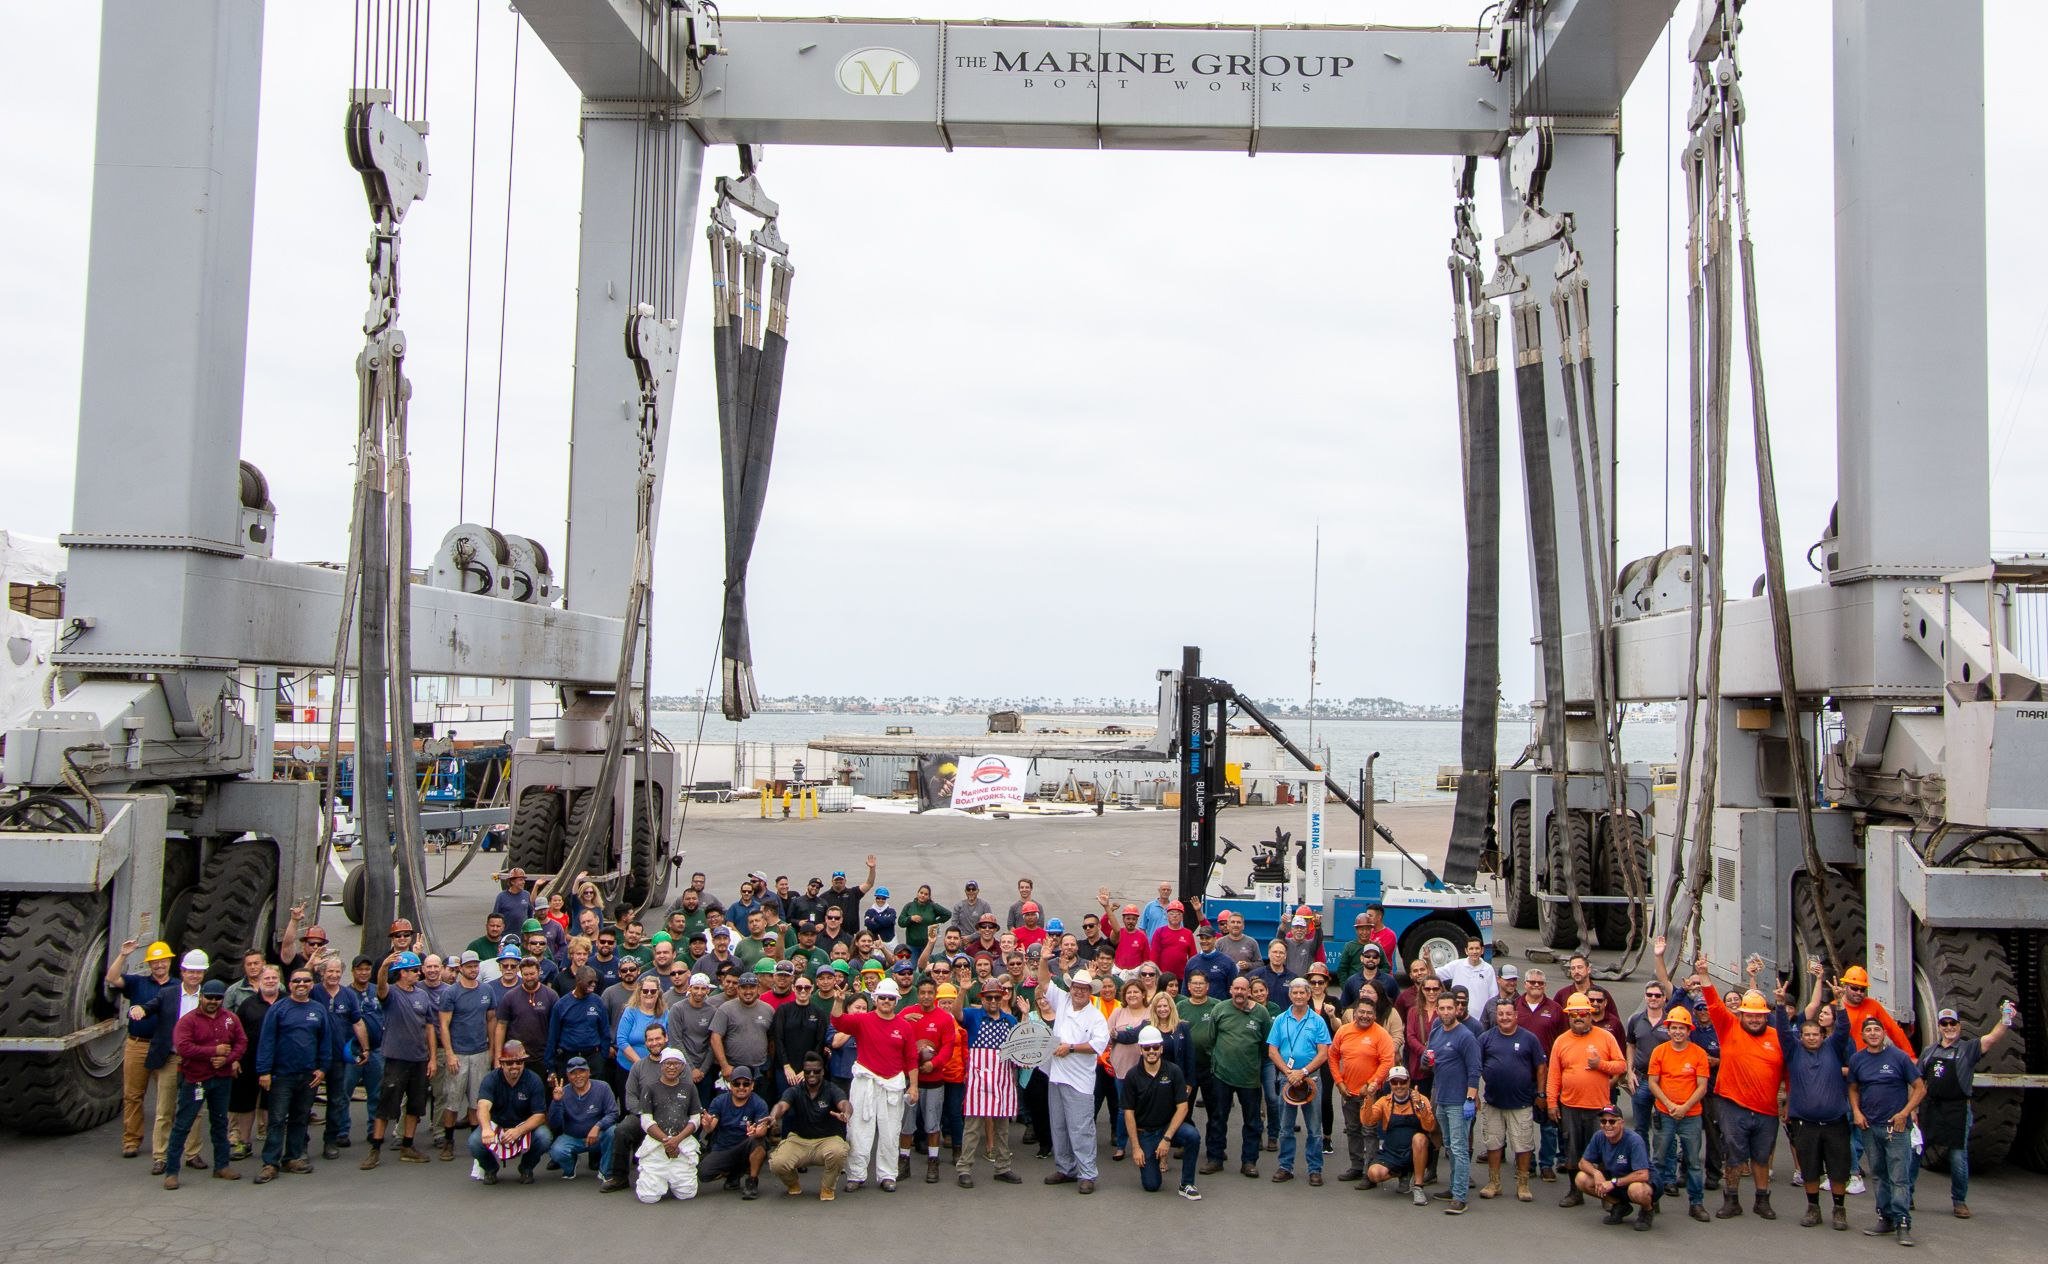 MBGW group picture